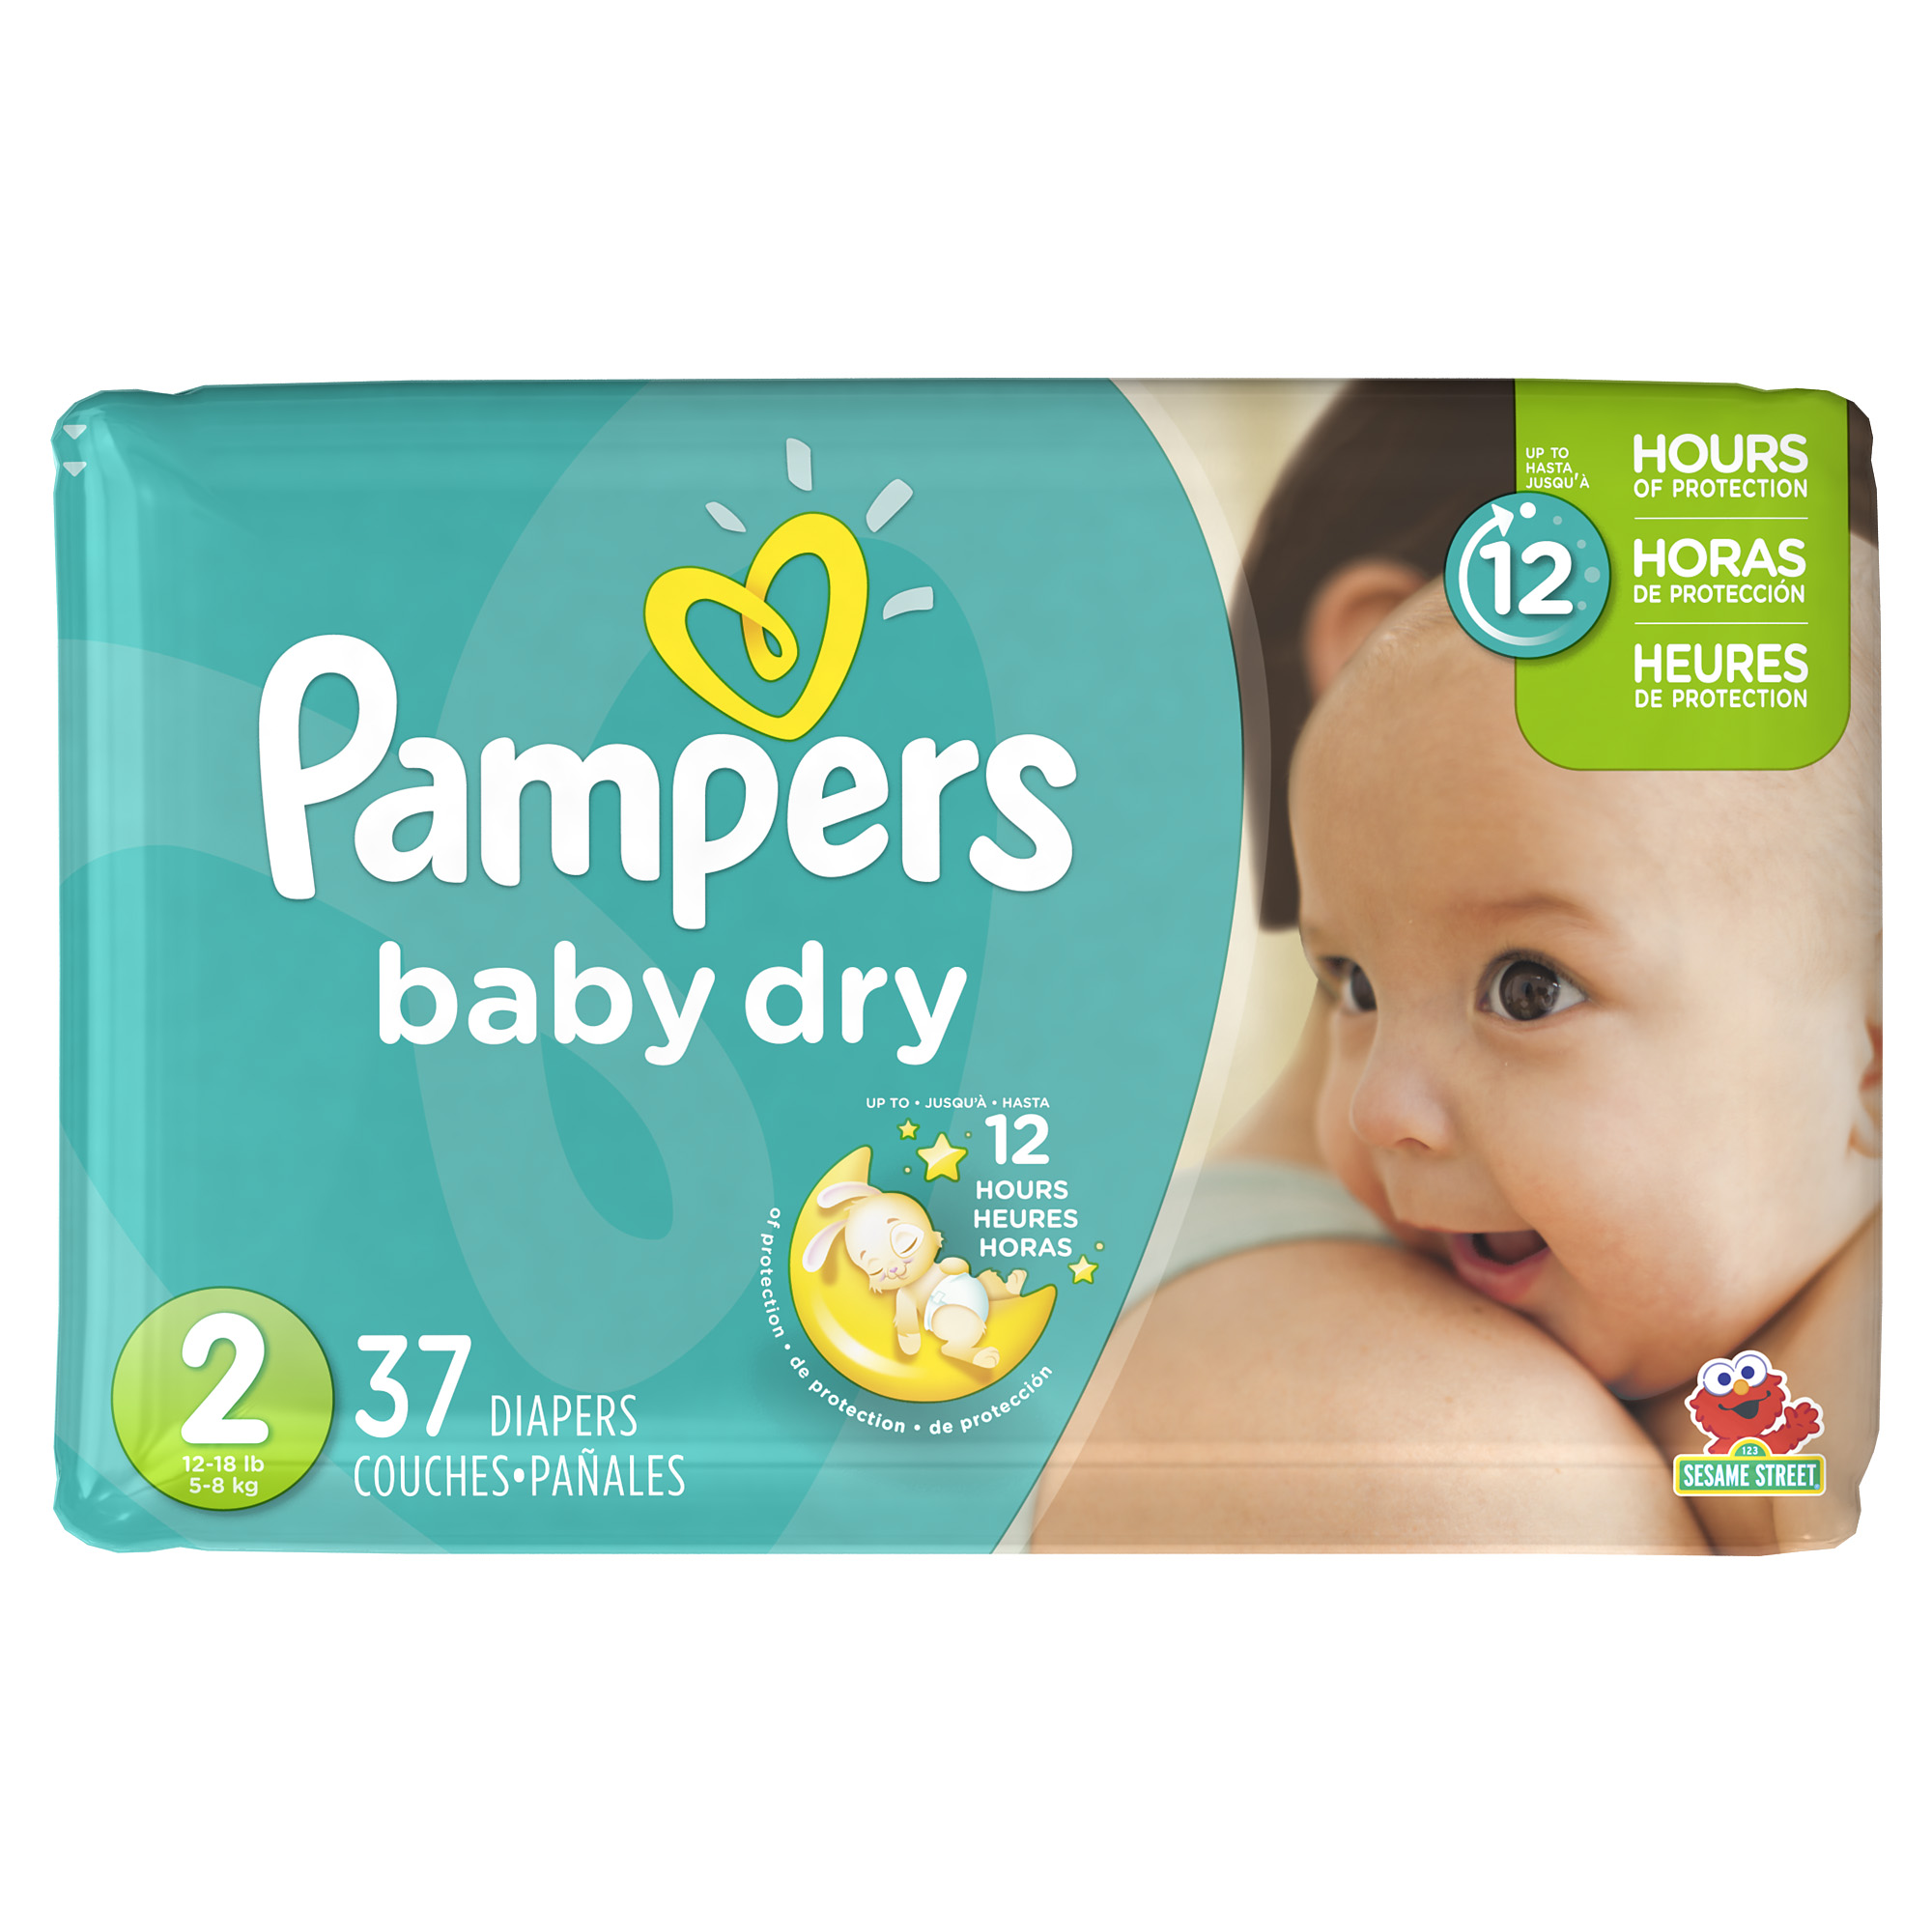 pin pampers baby dry disposable nappies reviews australia www on pinterest. Black Bedroom Furniture Sets. Home Design Ideas